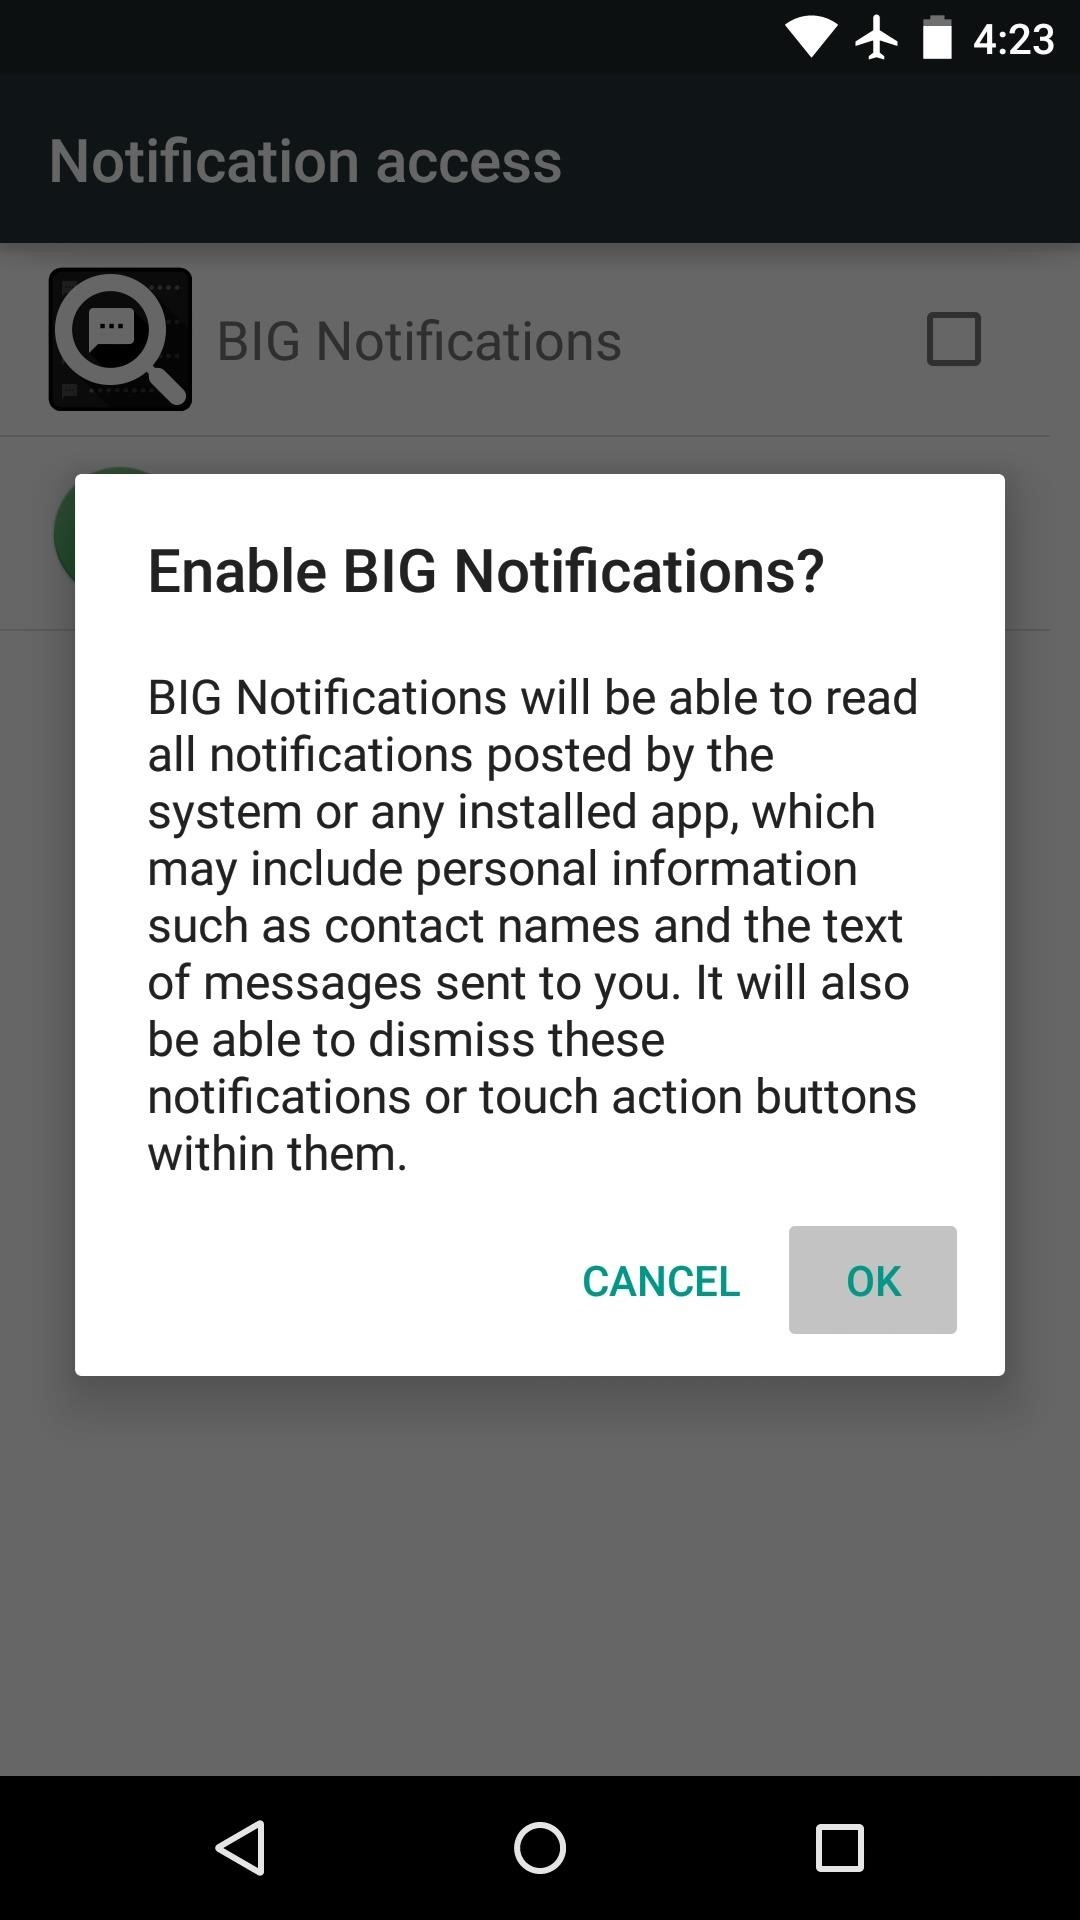 Enlarge Notifications on Android to Make Them Easier to Read